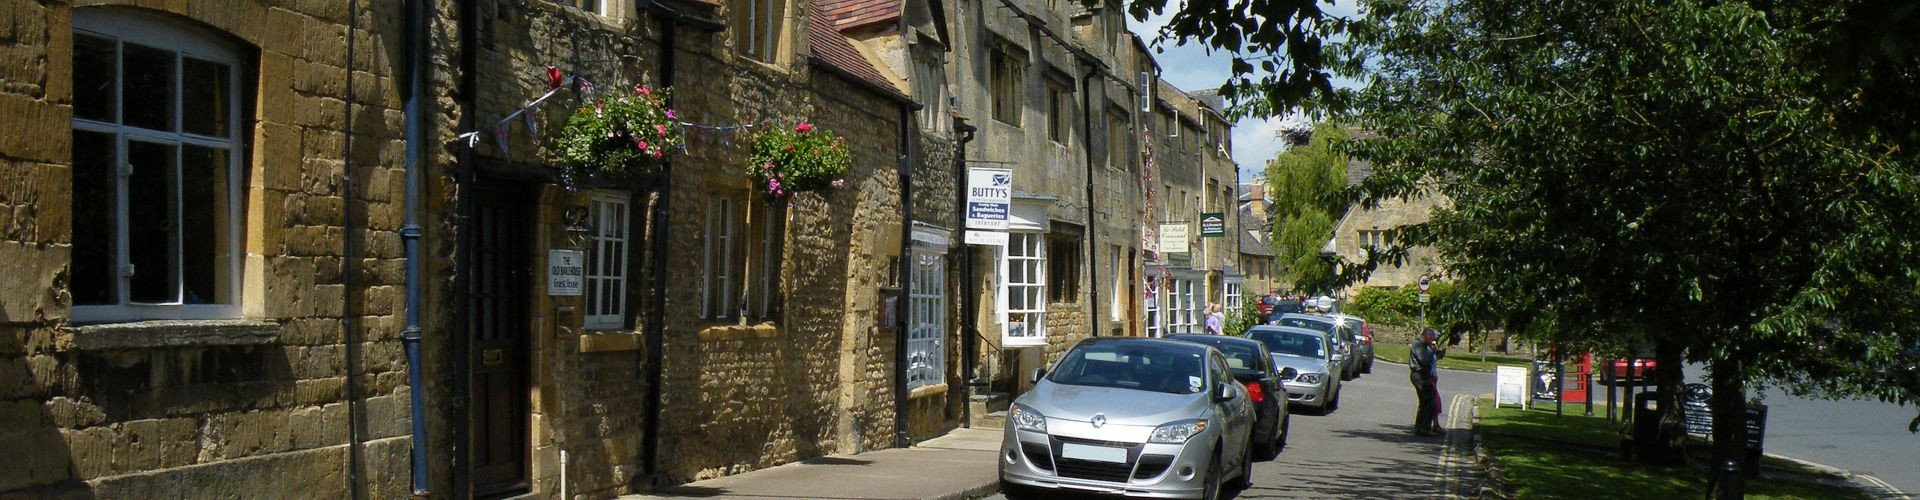 JHGabb-Offices-Chipping-Campden